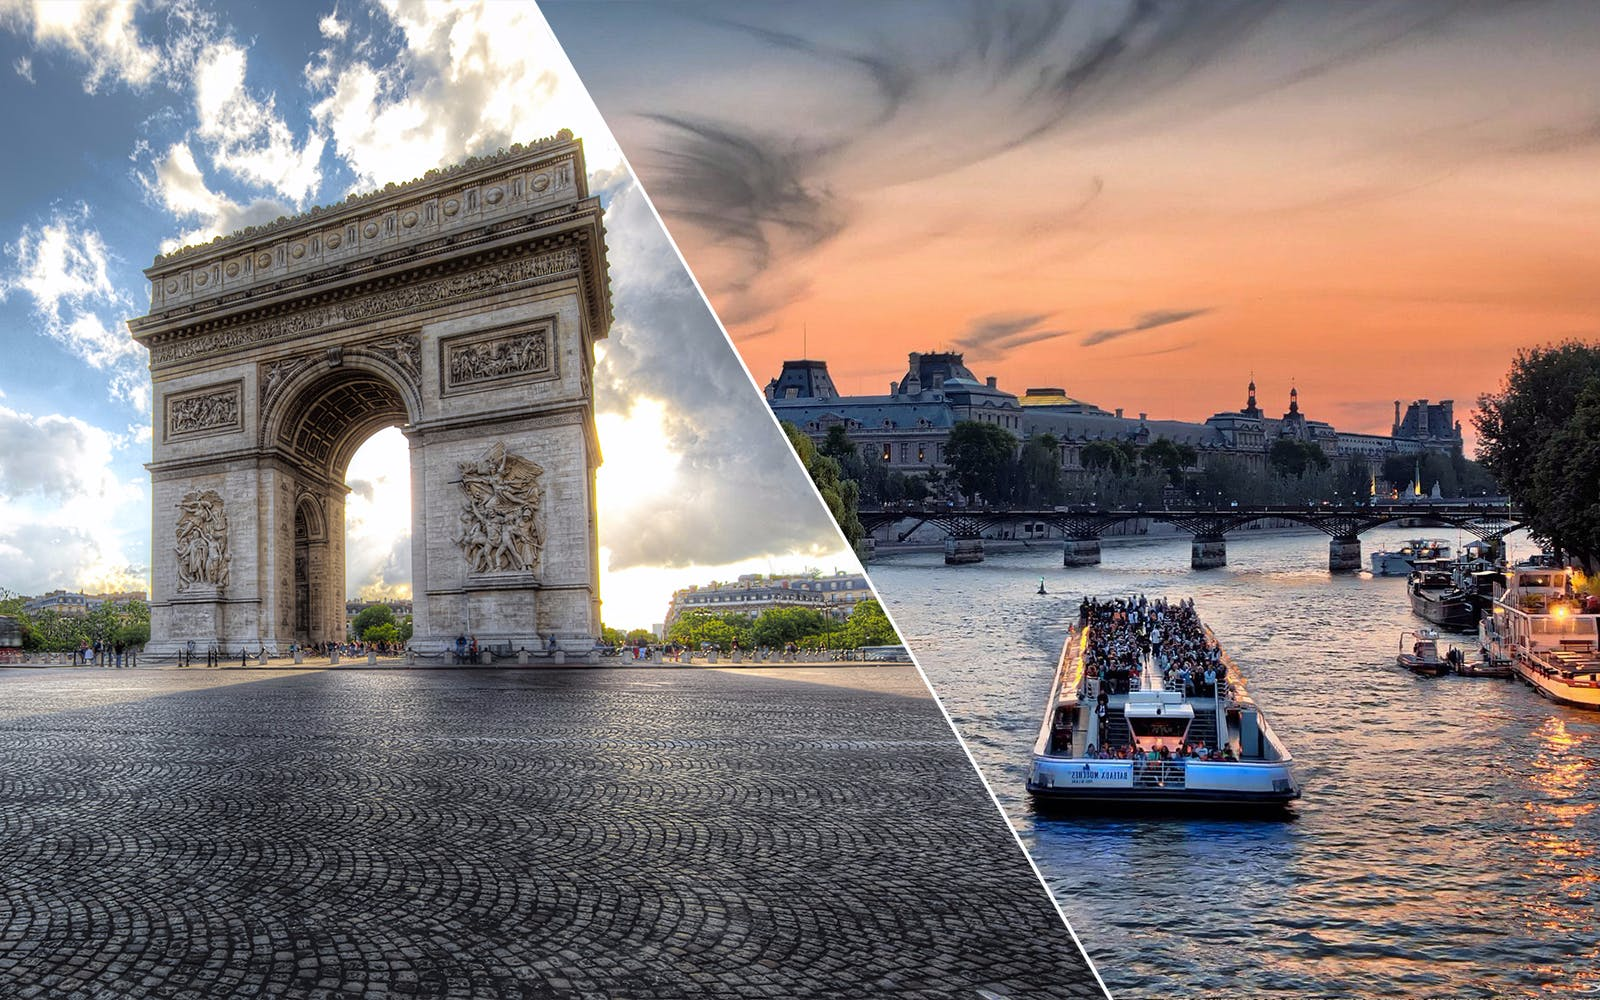 Skip the Line: Arc de Triomphe with Rooftop Access + Seine River Cruise Combo